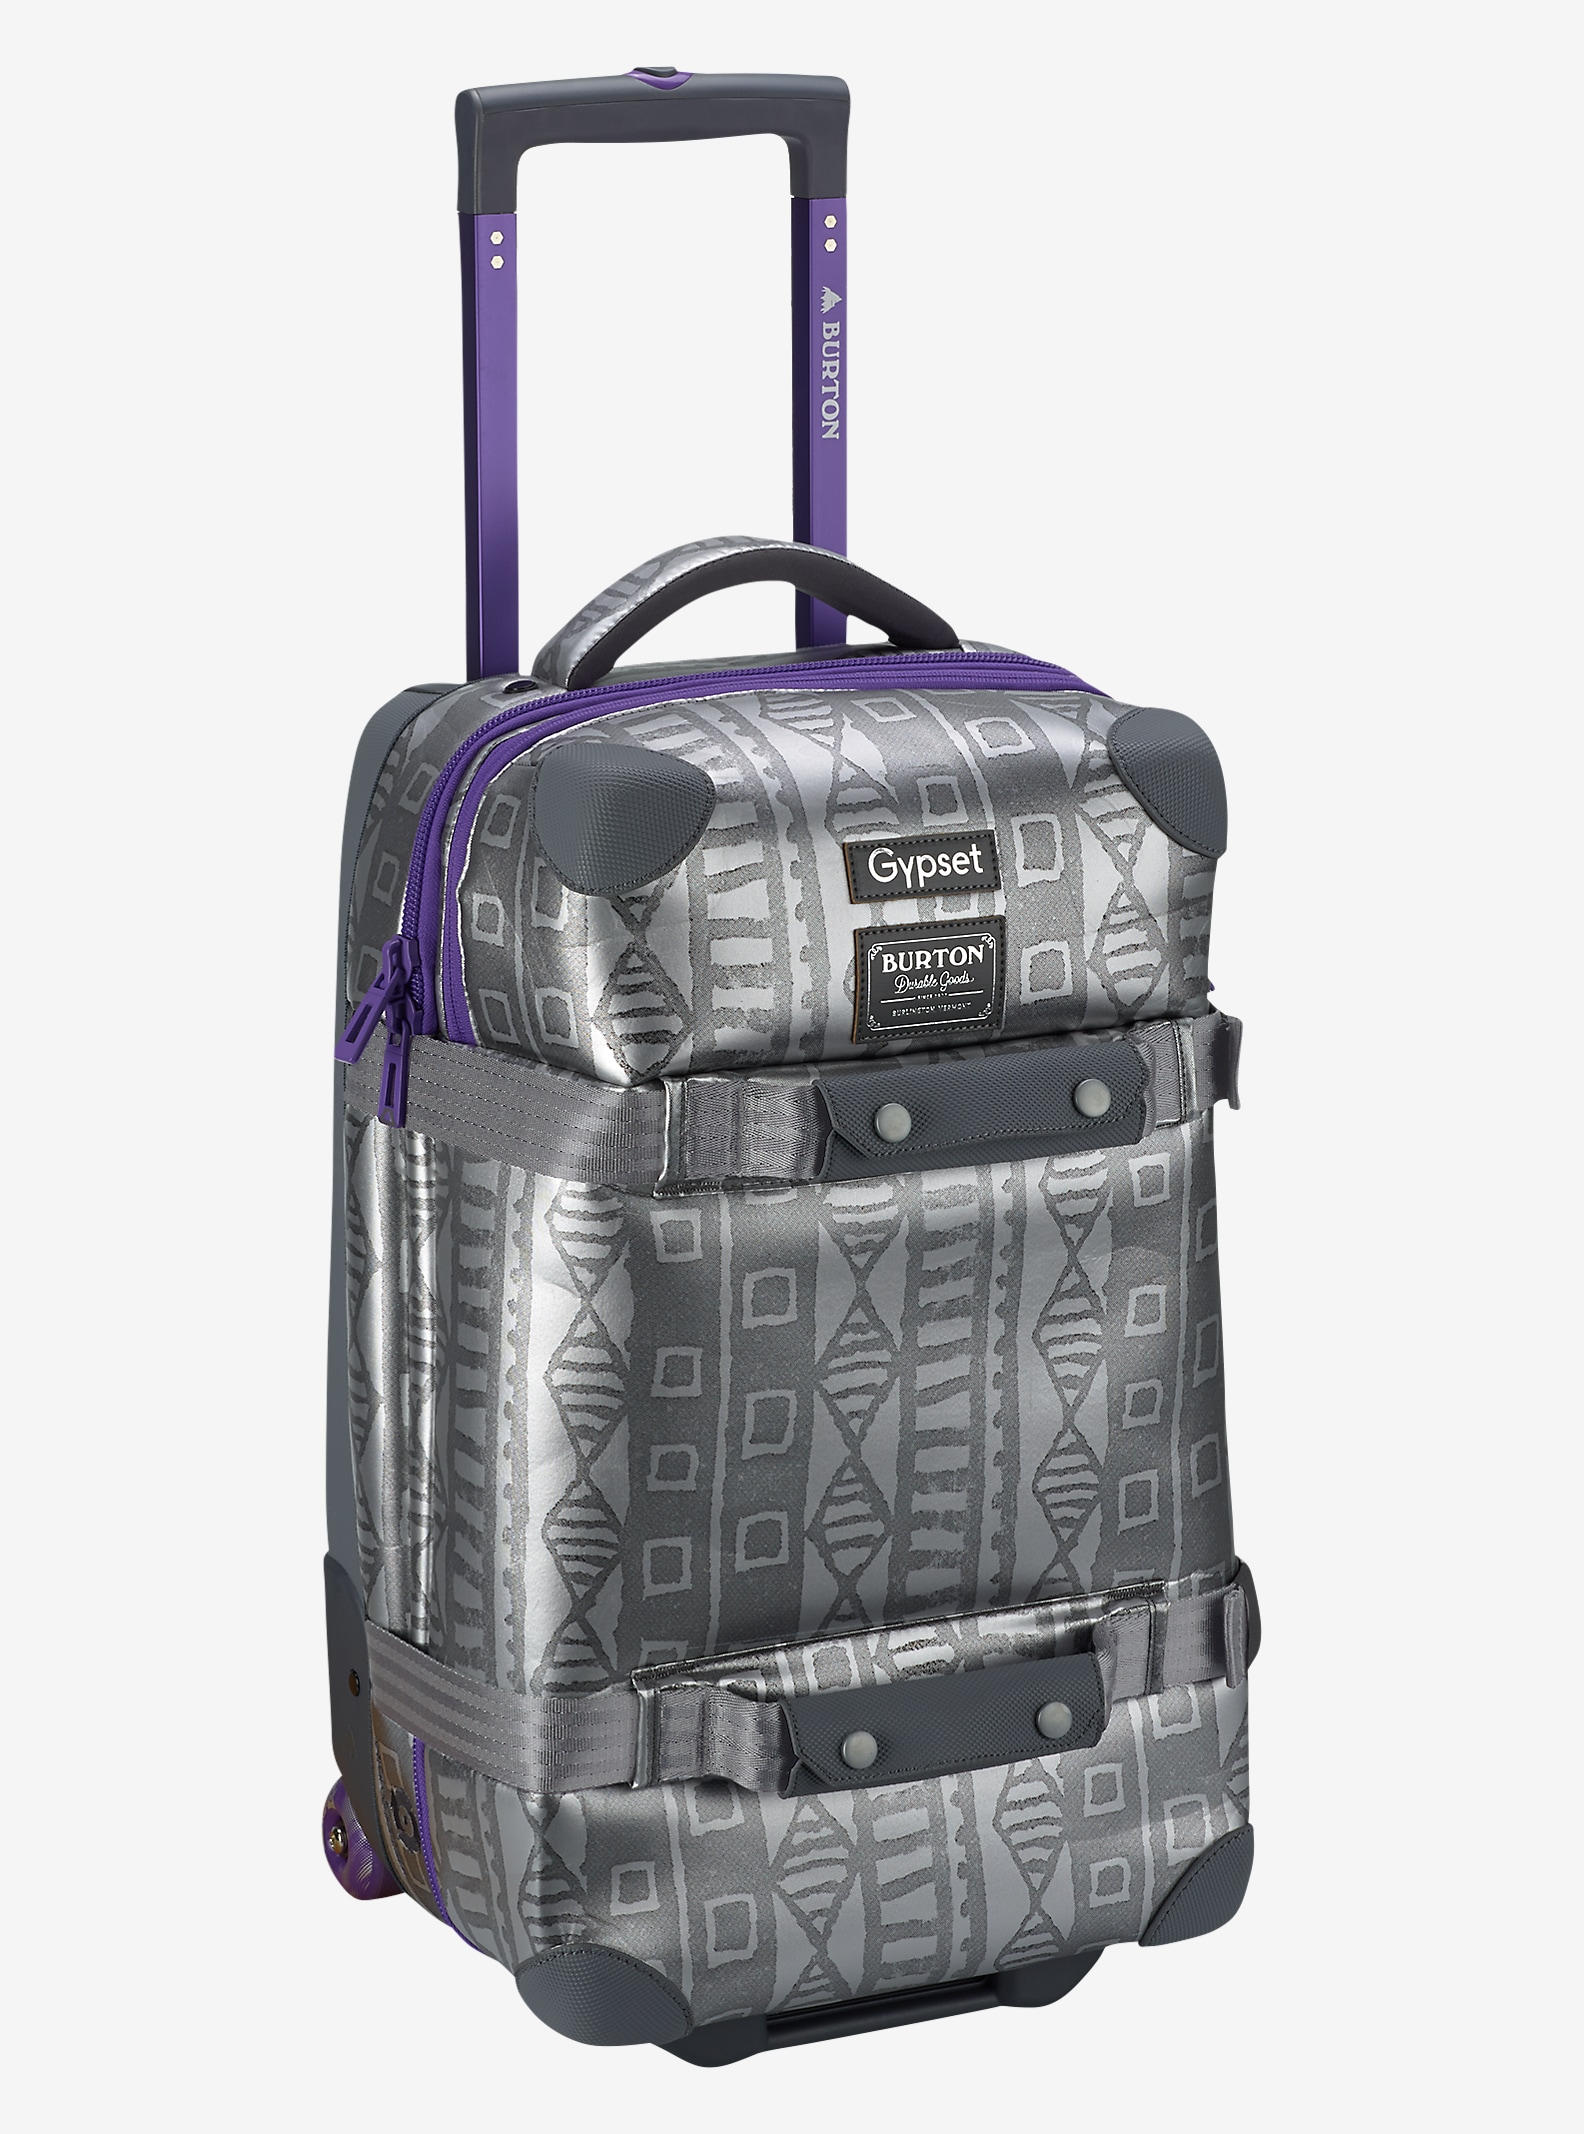 Burton x Gypset Wheelie Flight Deck Travel Bag shown in Galactic Mudcloth